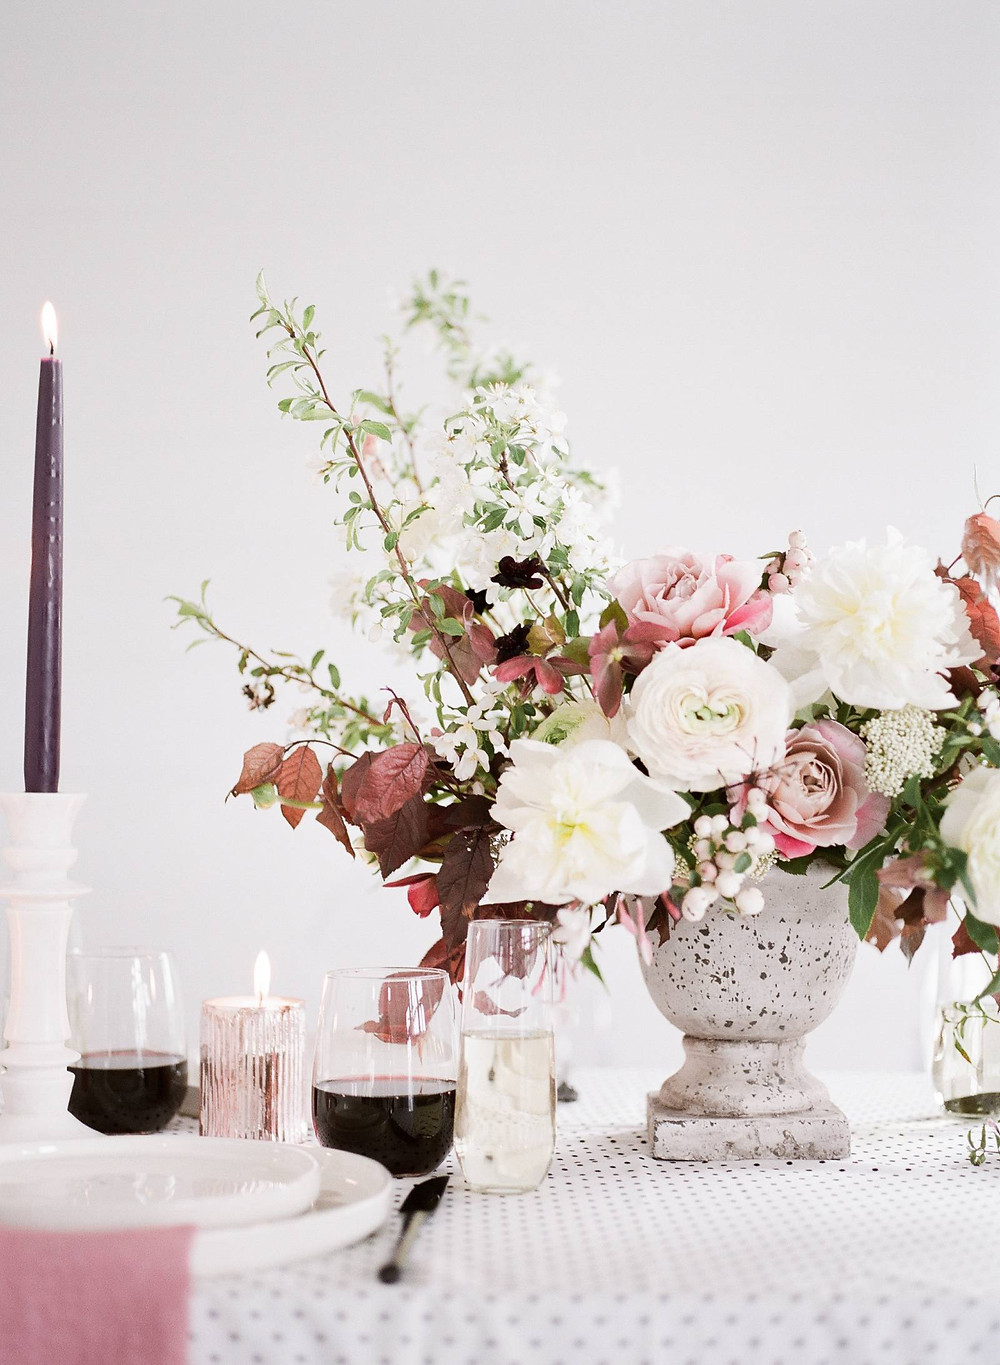 Modern garden centerpiece by Studio Bloom Iowa of roses, ranunculus, peonies, plum, and flowering branches in mauve and white